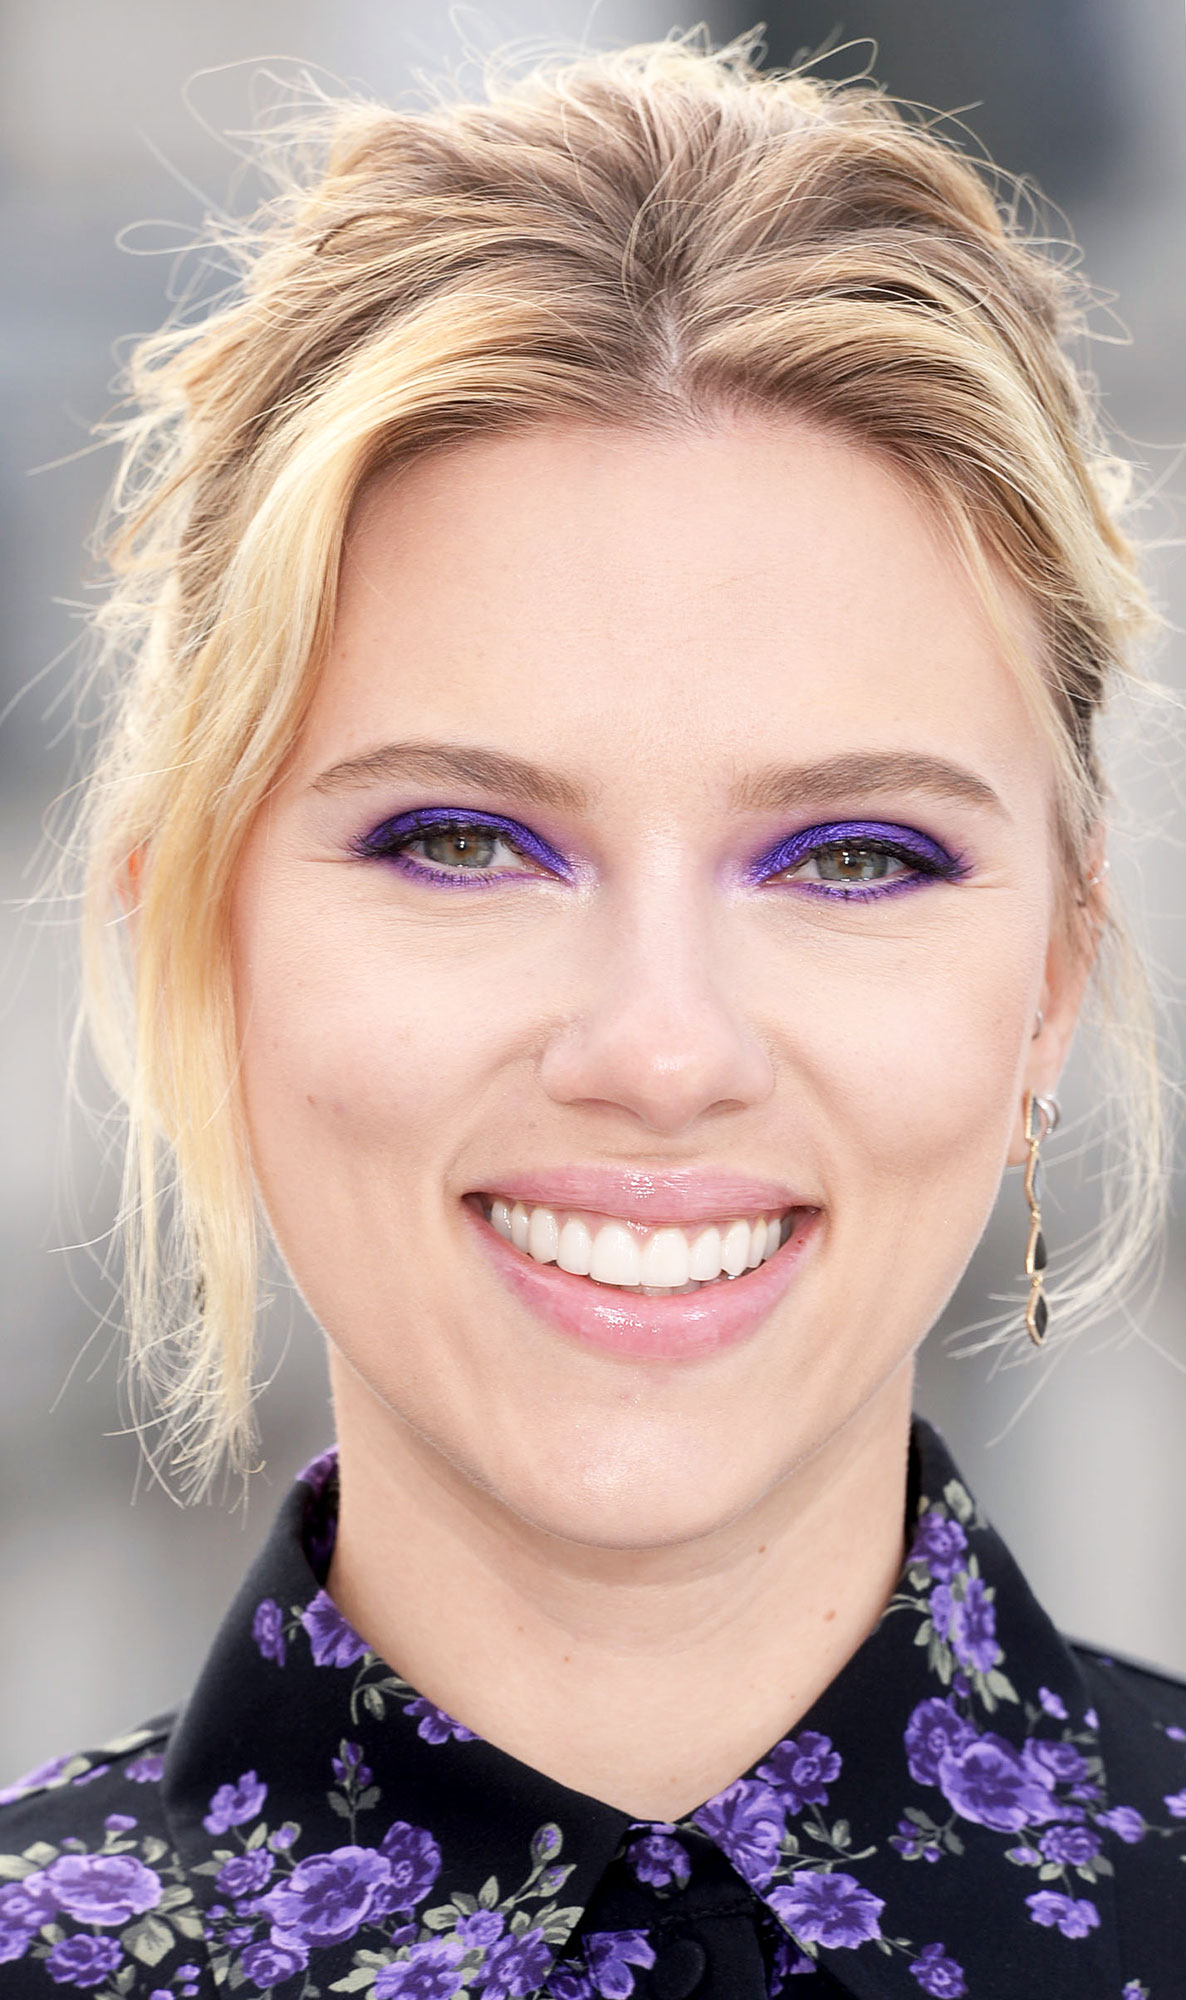 Scarlett Johansson coachella makeup purple eyeshadow - Makeup artist Frankie Boyd made the case for matching your makeup to your wardrobe with this violet eye for the Avengers Endgame star that picked up the pretty floral pattern of her Michael Kors frock at a photocall for the film in London on Thursday, April 11.